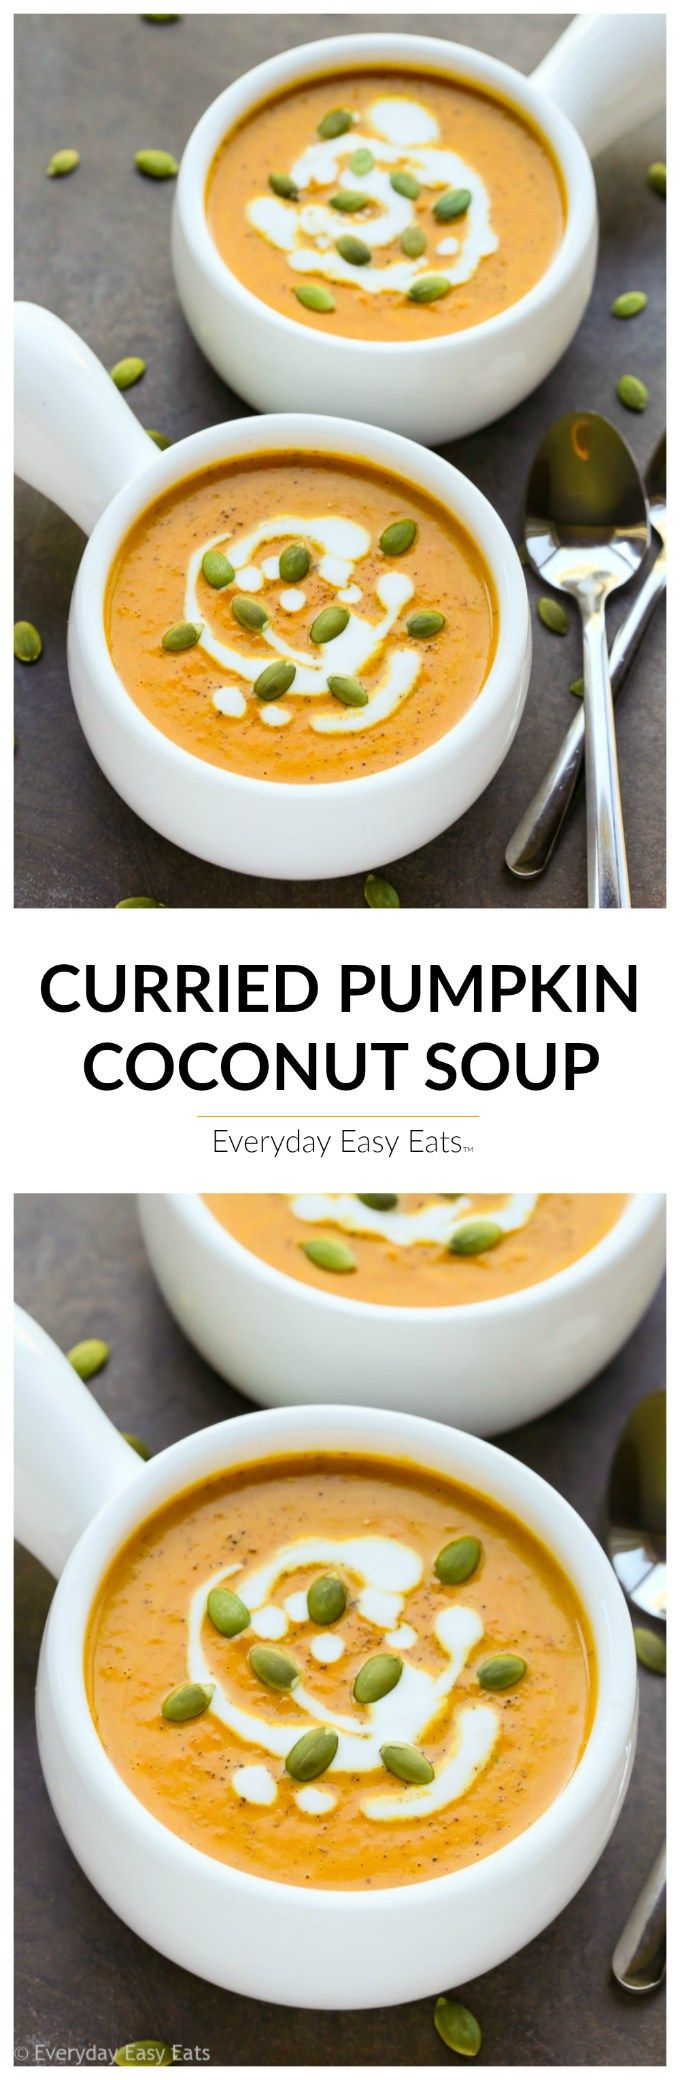 Curried Pumpkin Coconut Soup - Gluten-free, dairy-free, vegan, paleo and ready in 20 minutes! | EverydayEasyEats.com